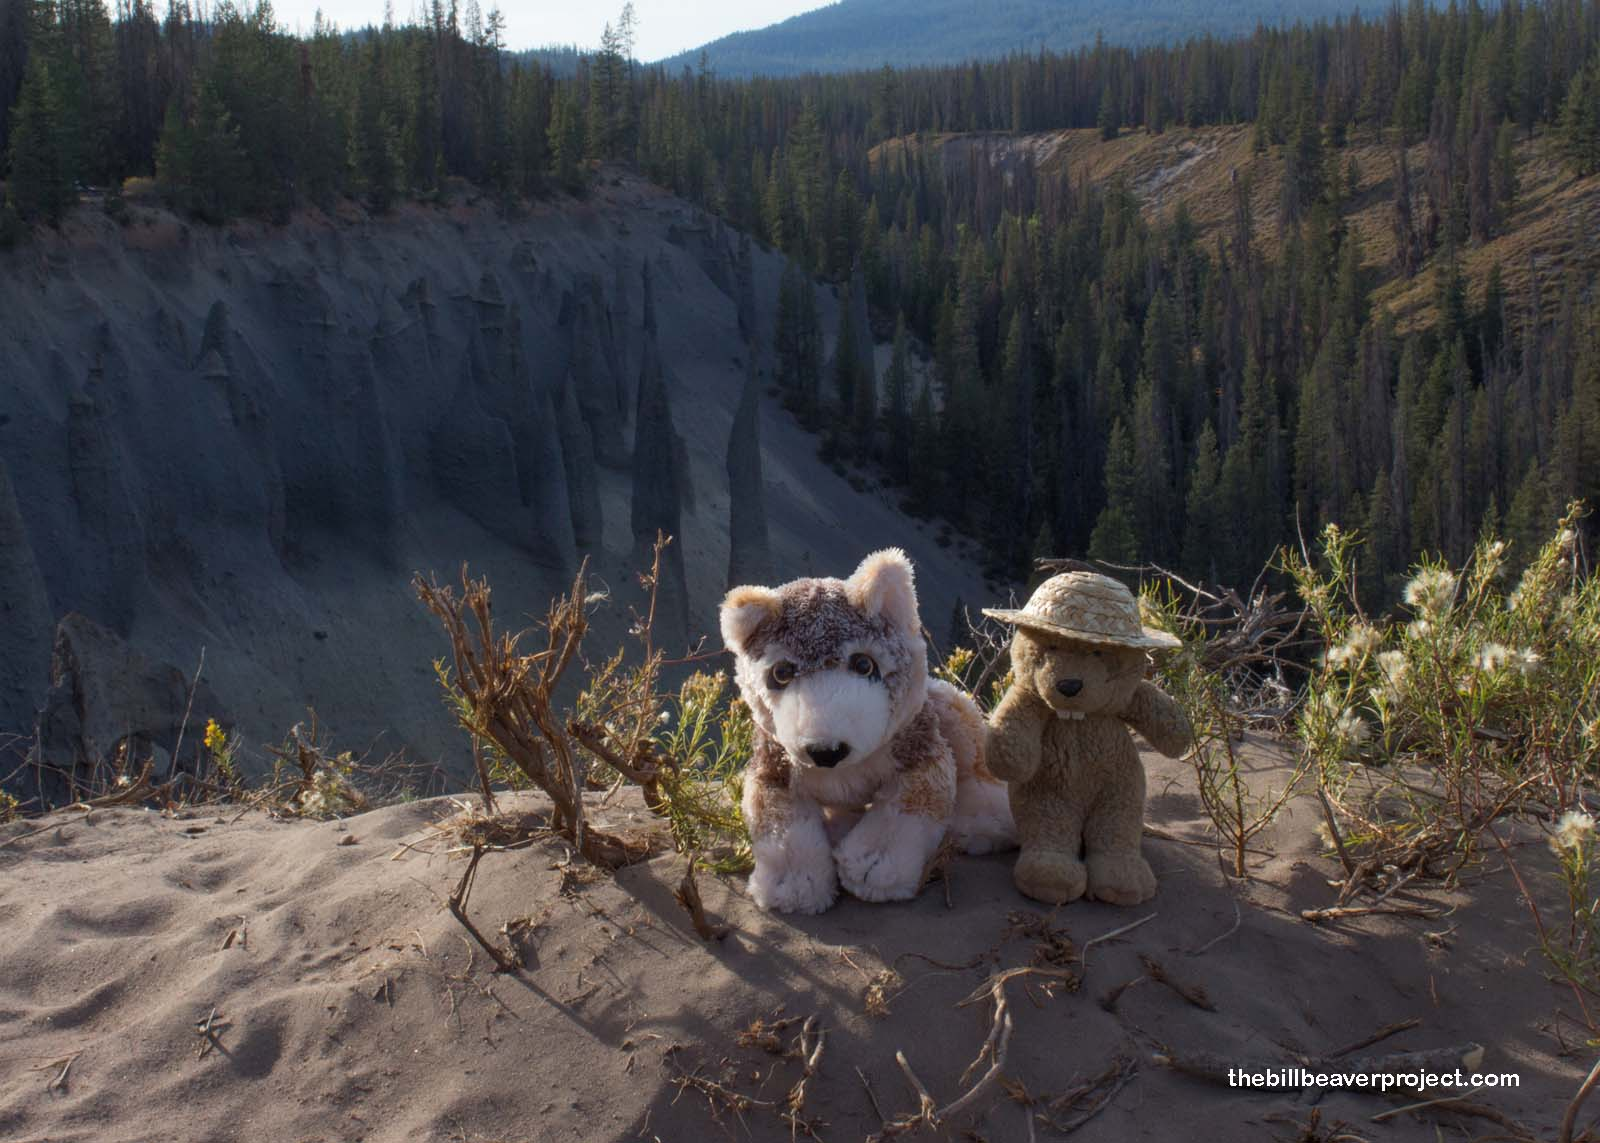 Crater Lake National Park The Bill Beaver Project - 10 cool landmarks in crater lake national park